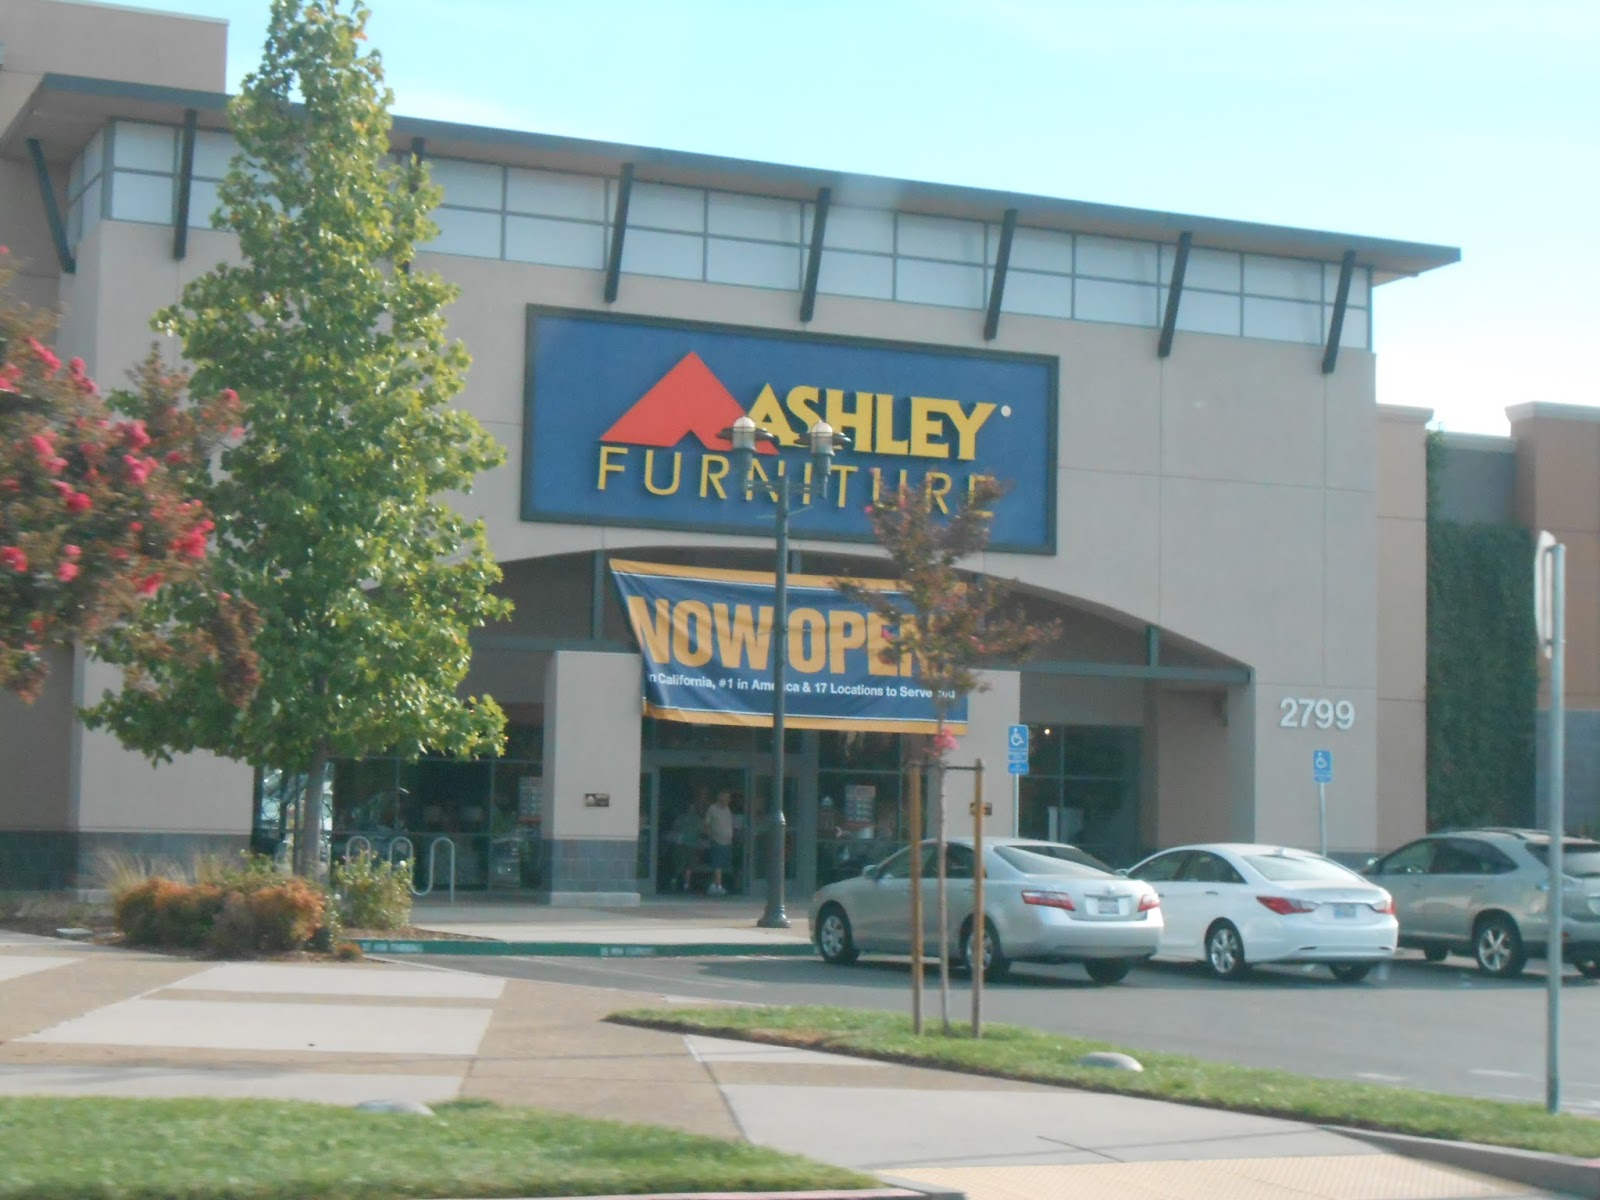 Ashley Furniture Home Store Locations 1600 x 1200